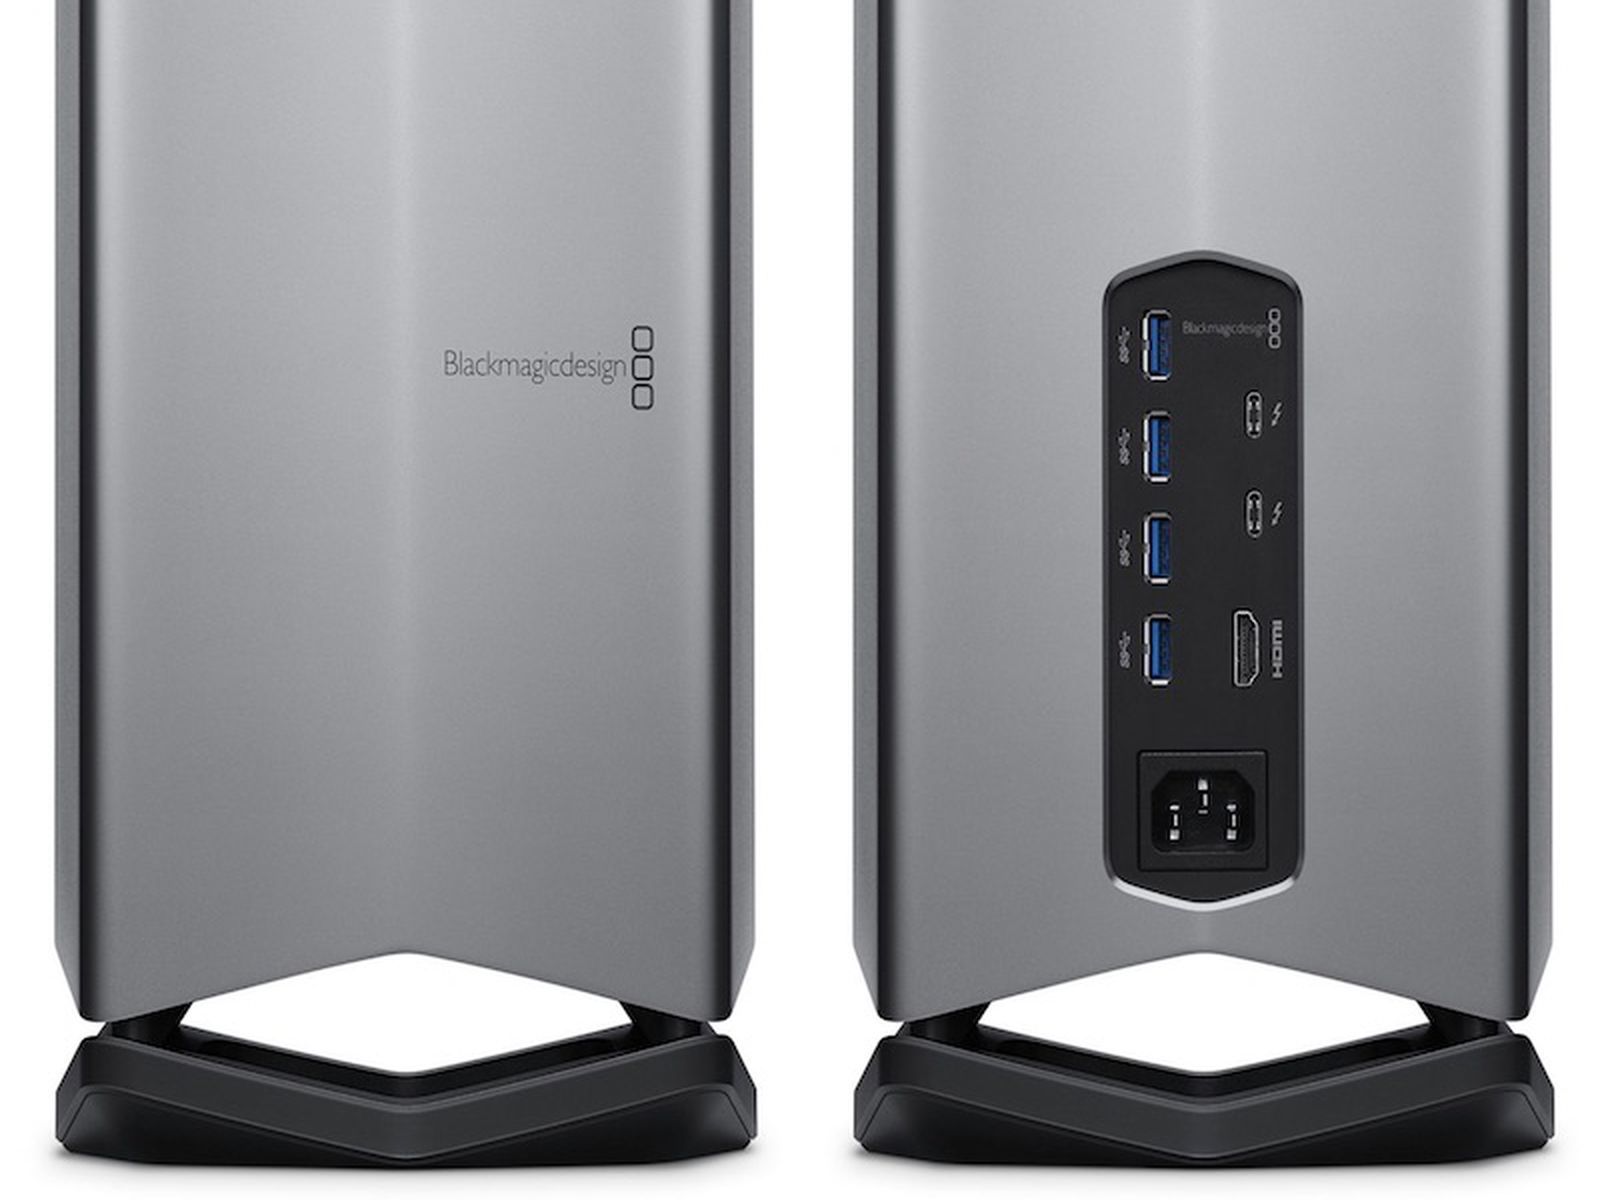 Blackmagic Releases New Egpu Firmware With Pro Display Xdr Support Macrumors